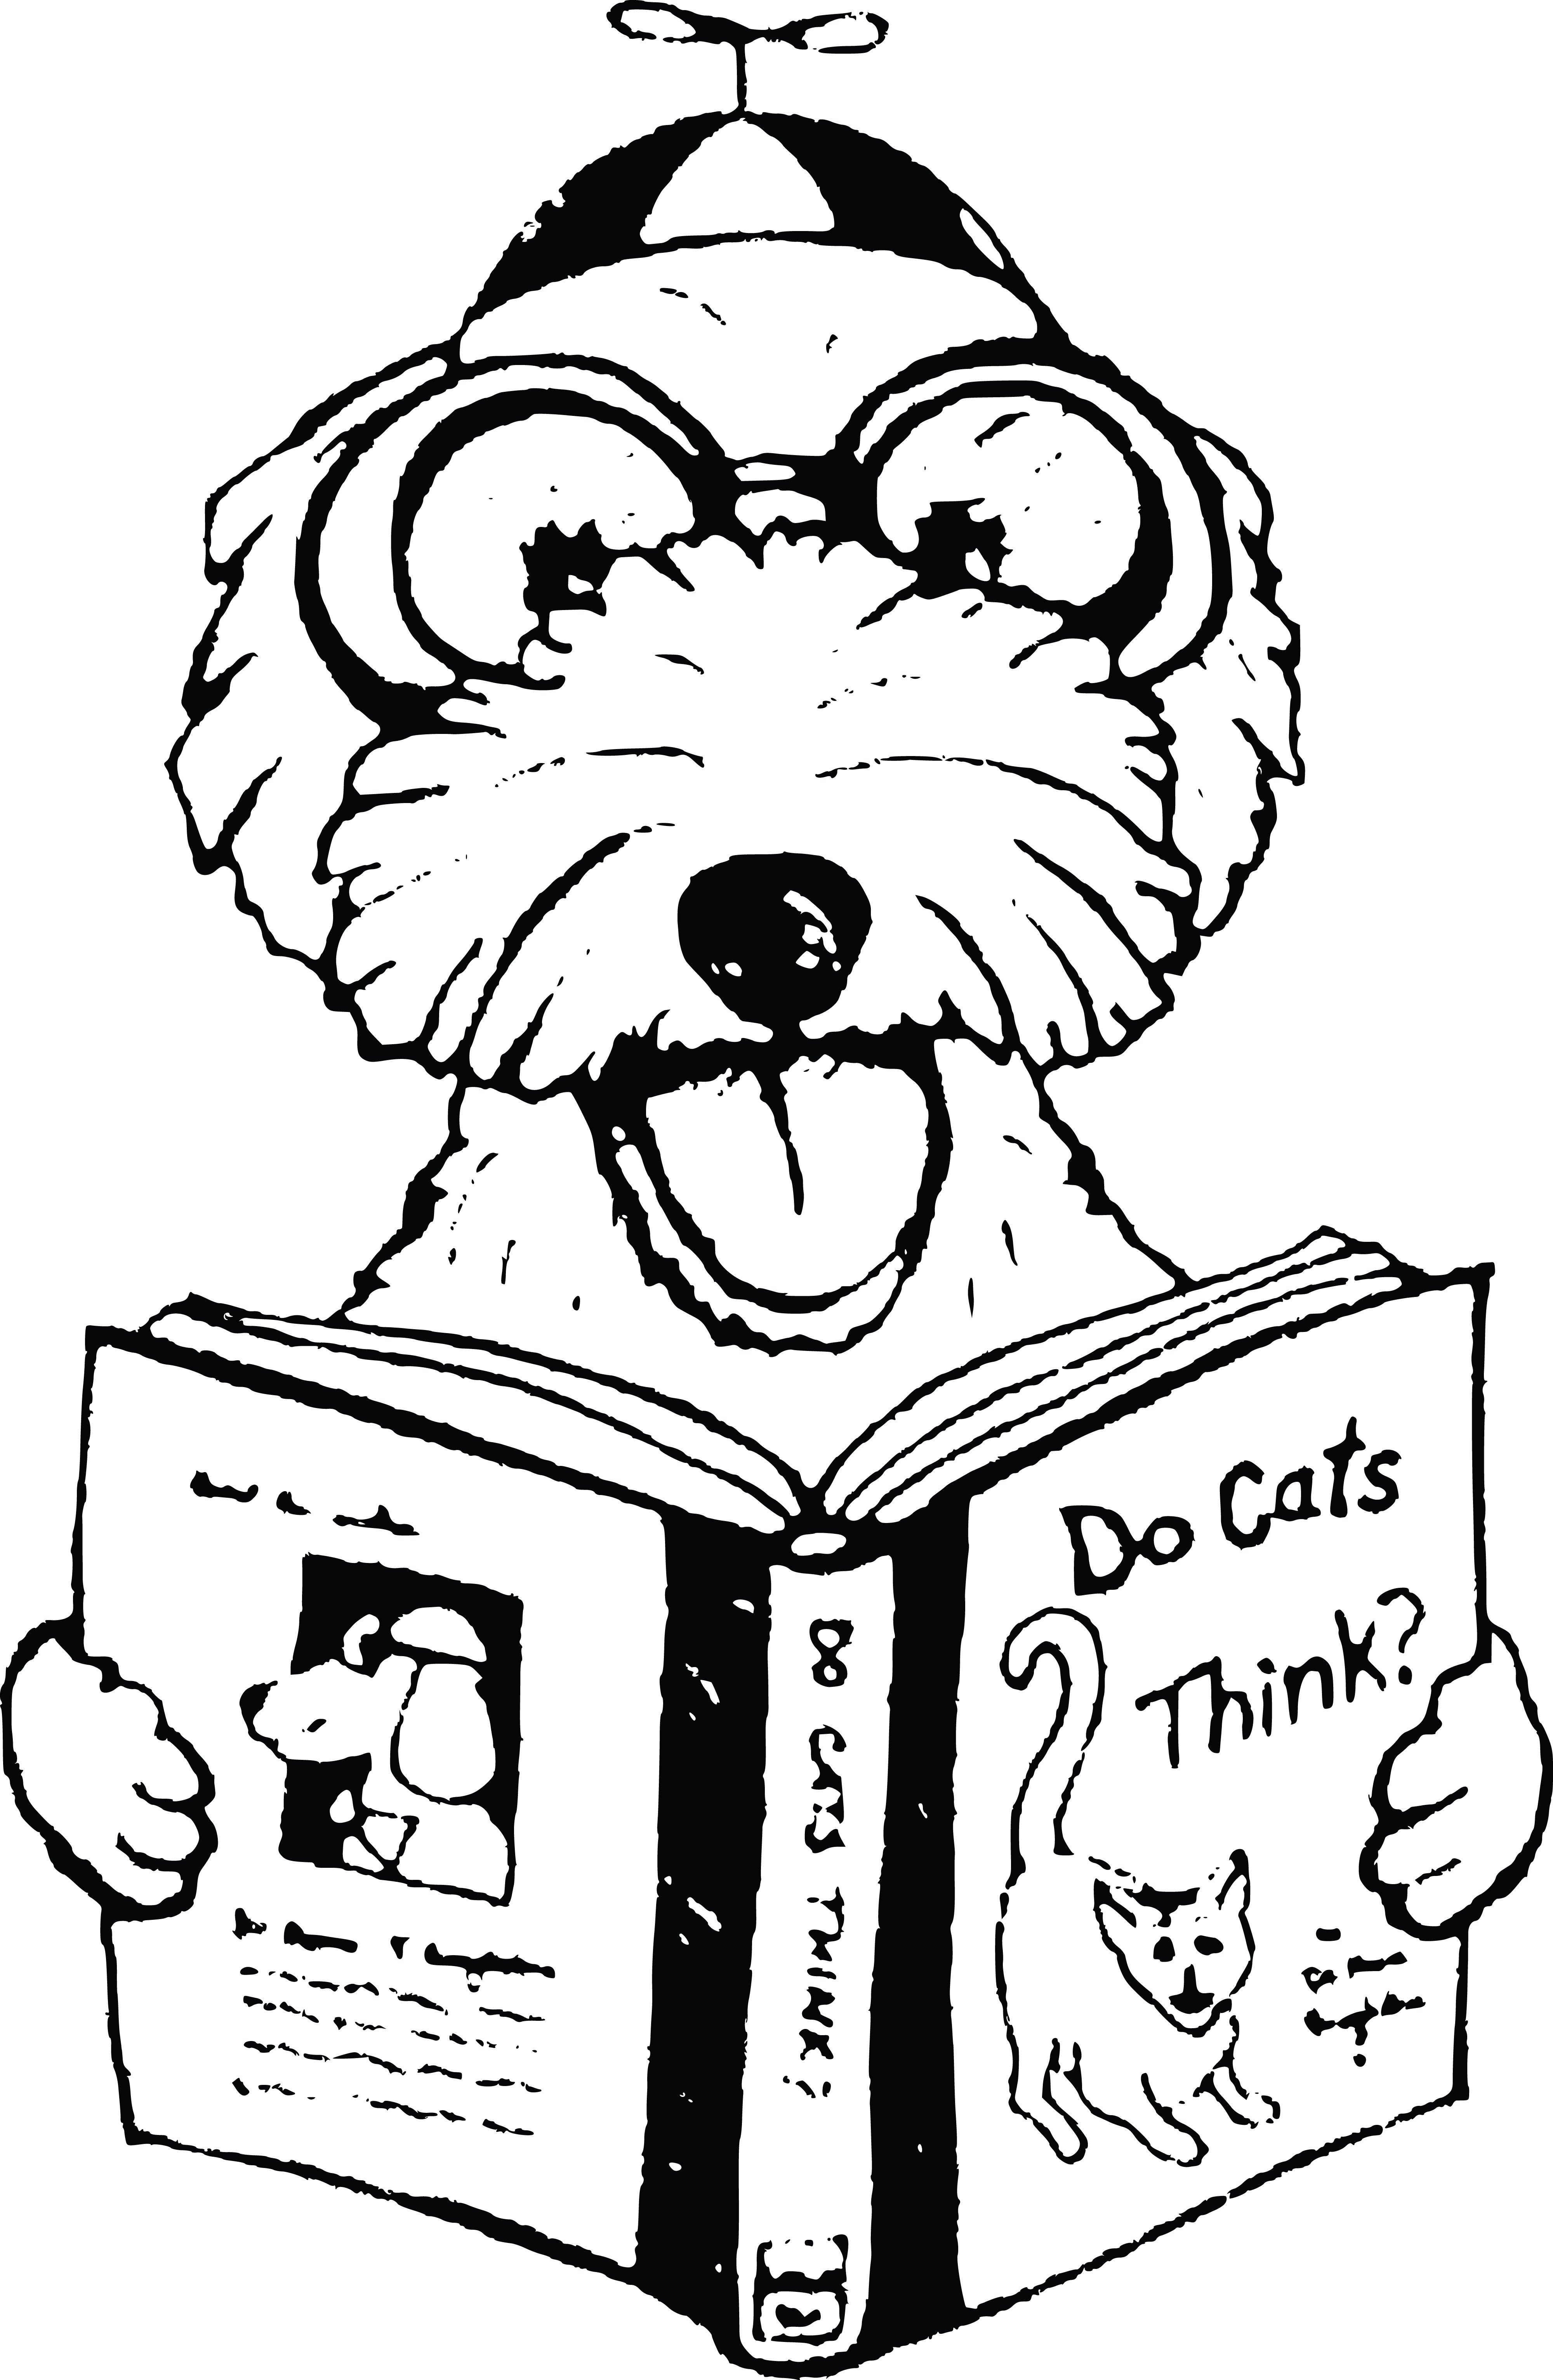 free clipart of a dog reading a book about cats Dog Pork BBQ